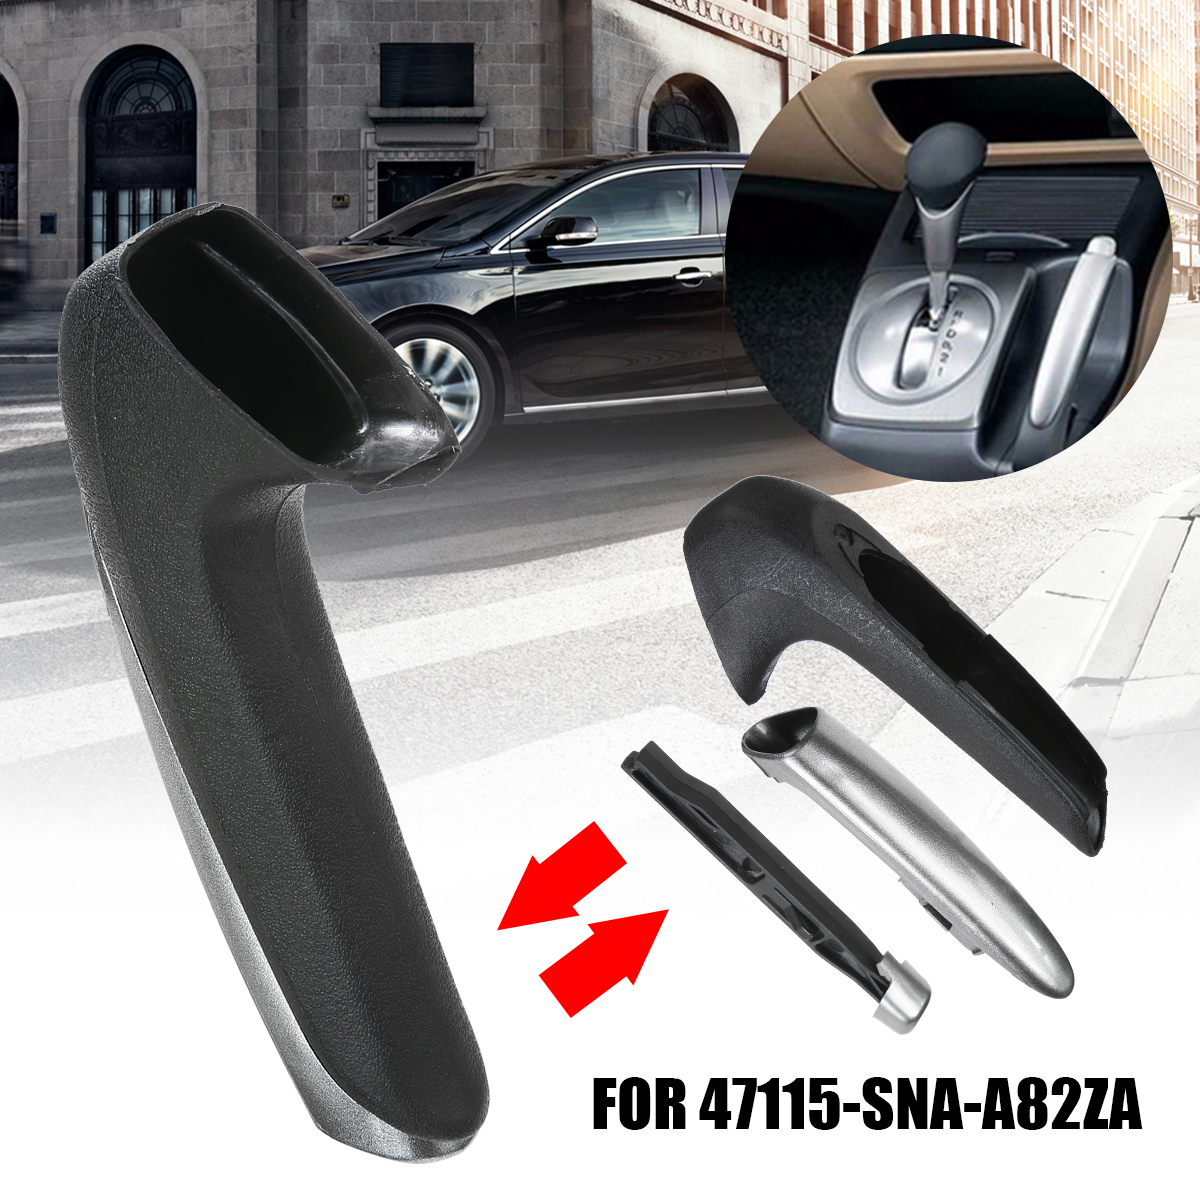 ABS Plastic Parking Brake Handle 47115-SNA-A82ZA/47125-SNA-A82ZB For Honda Civic 2006-2011